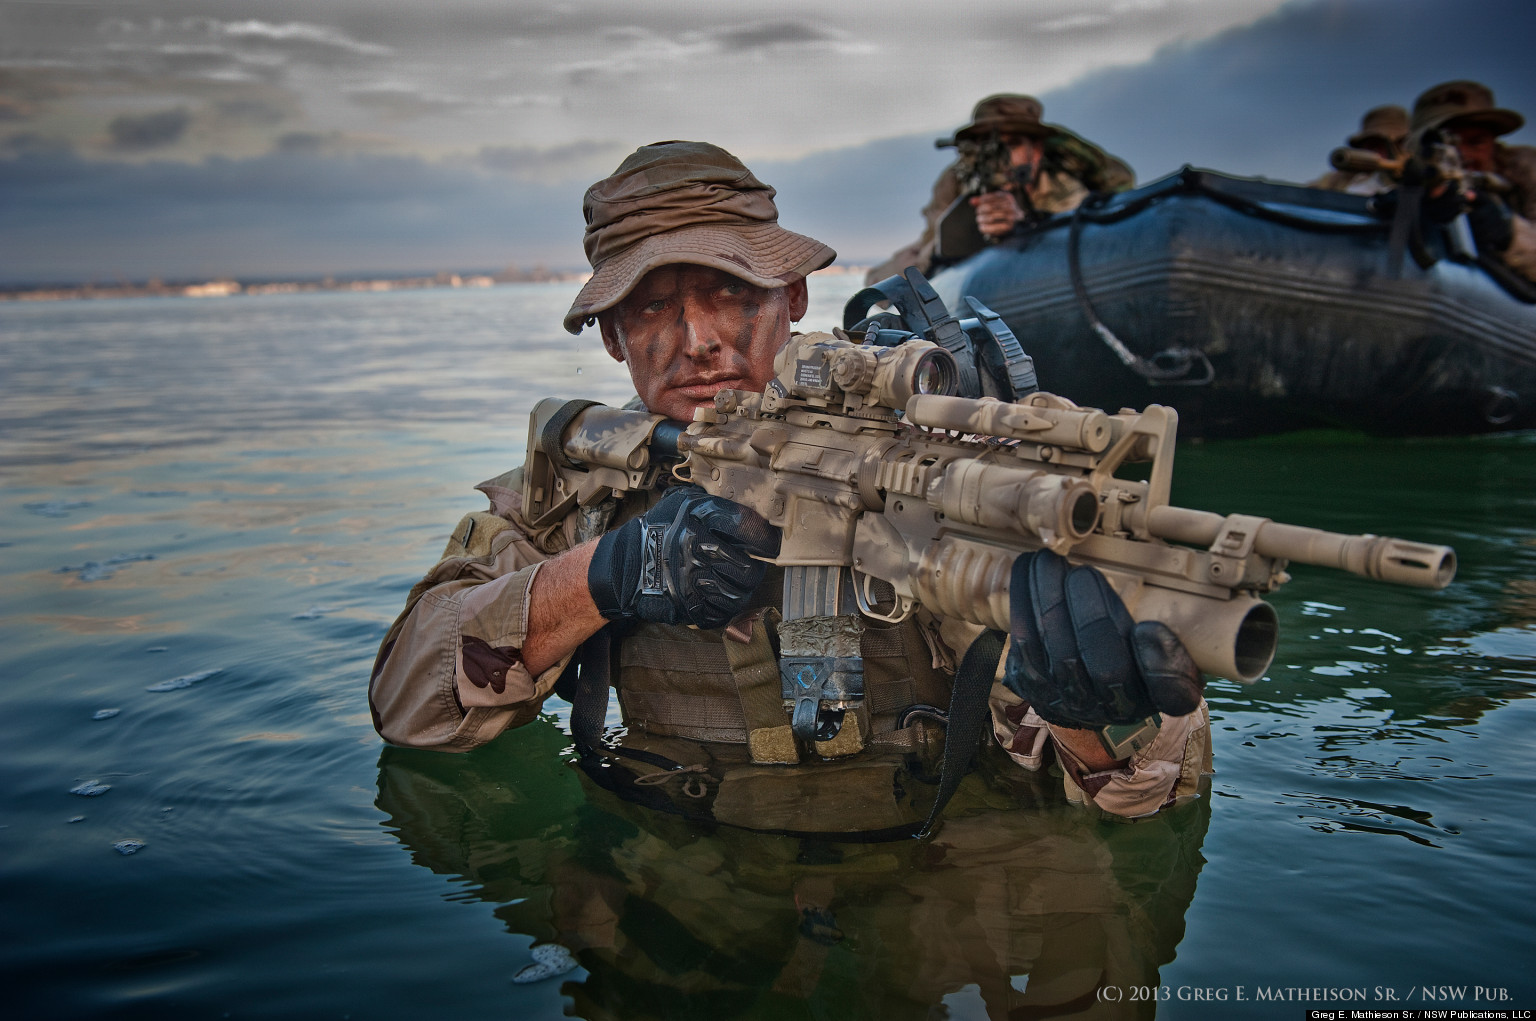 Serious case of stolen valor Guy claiming to be a Seal